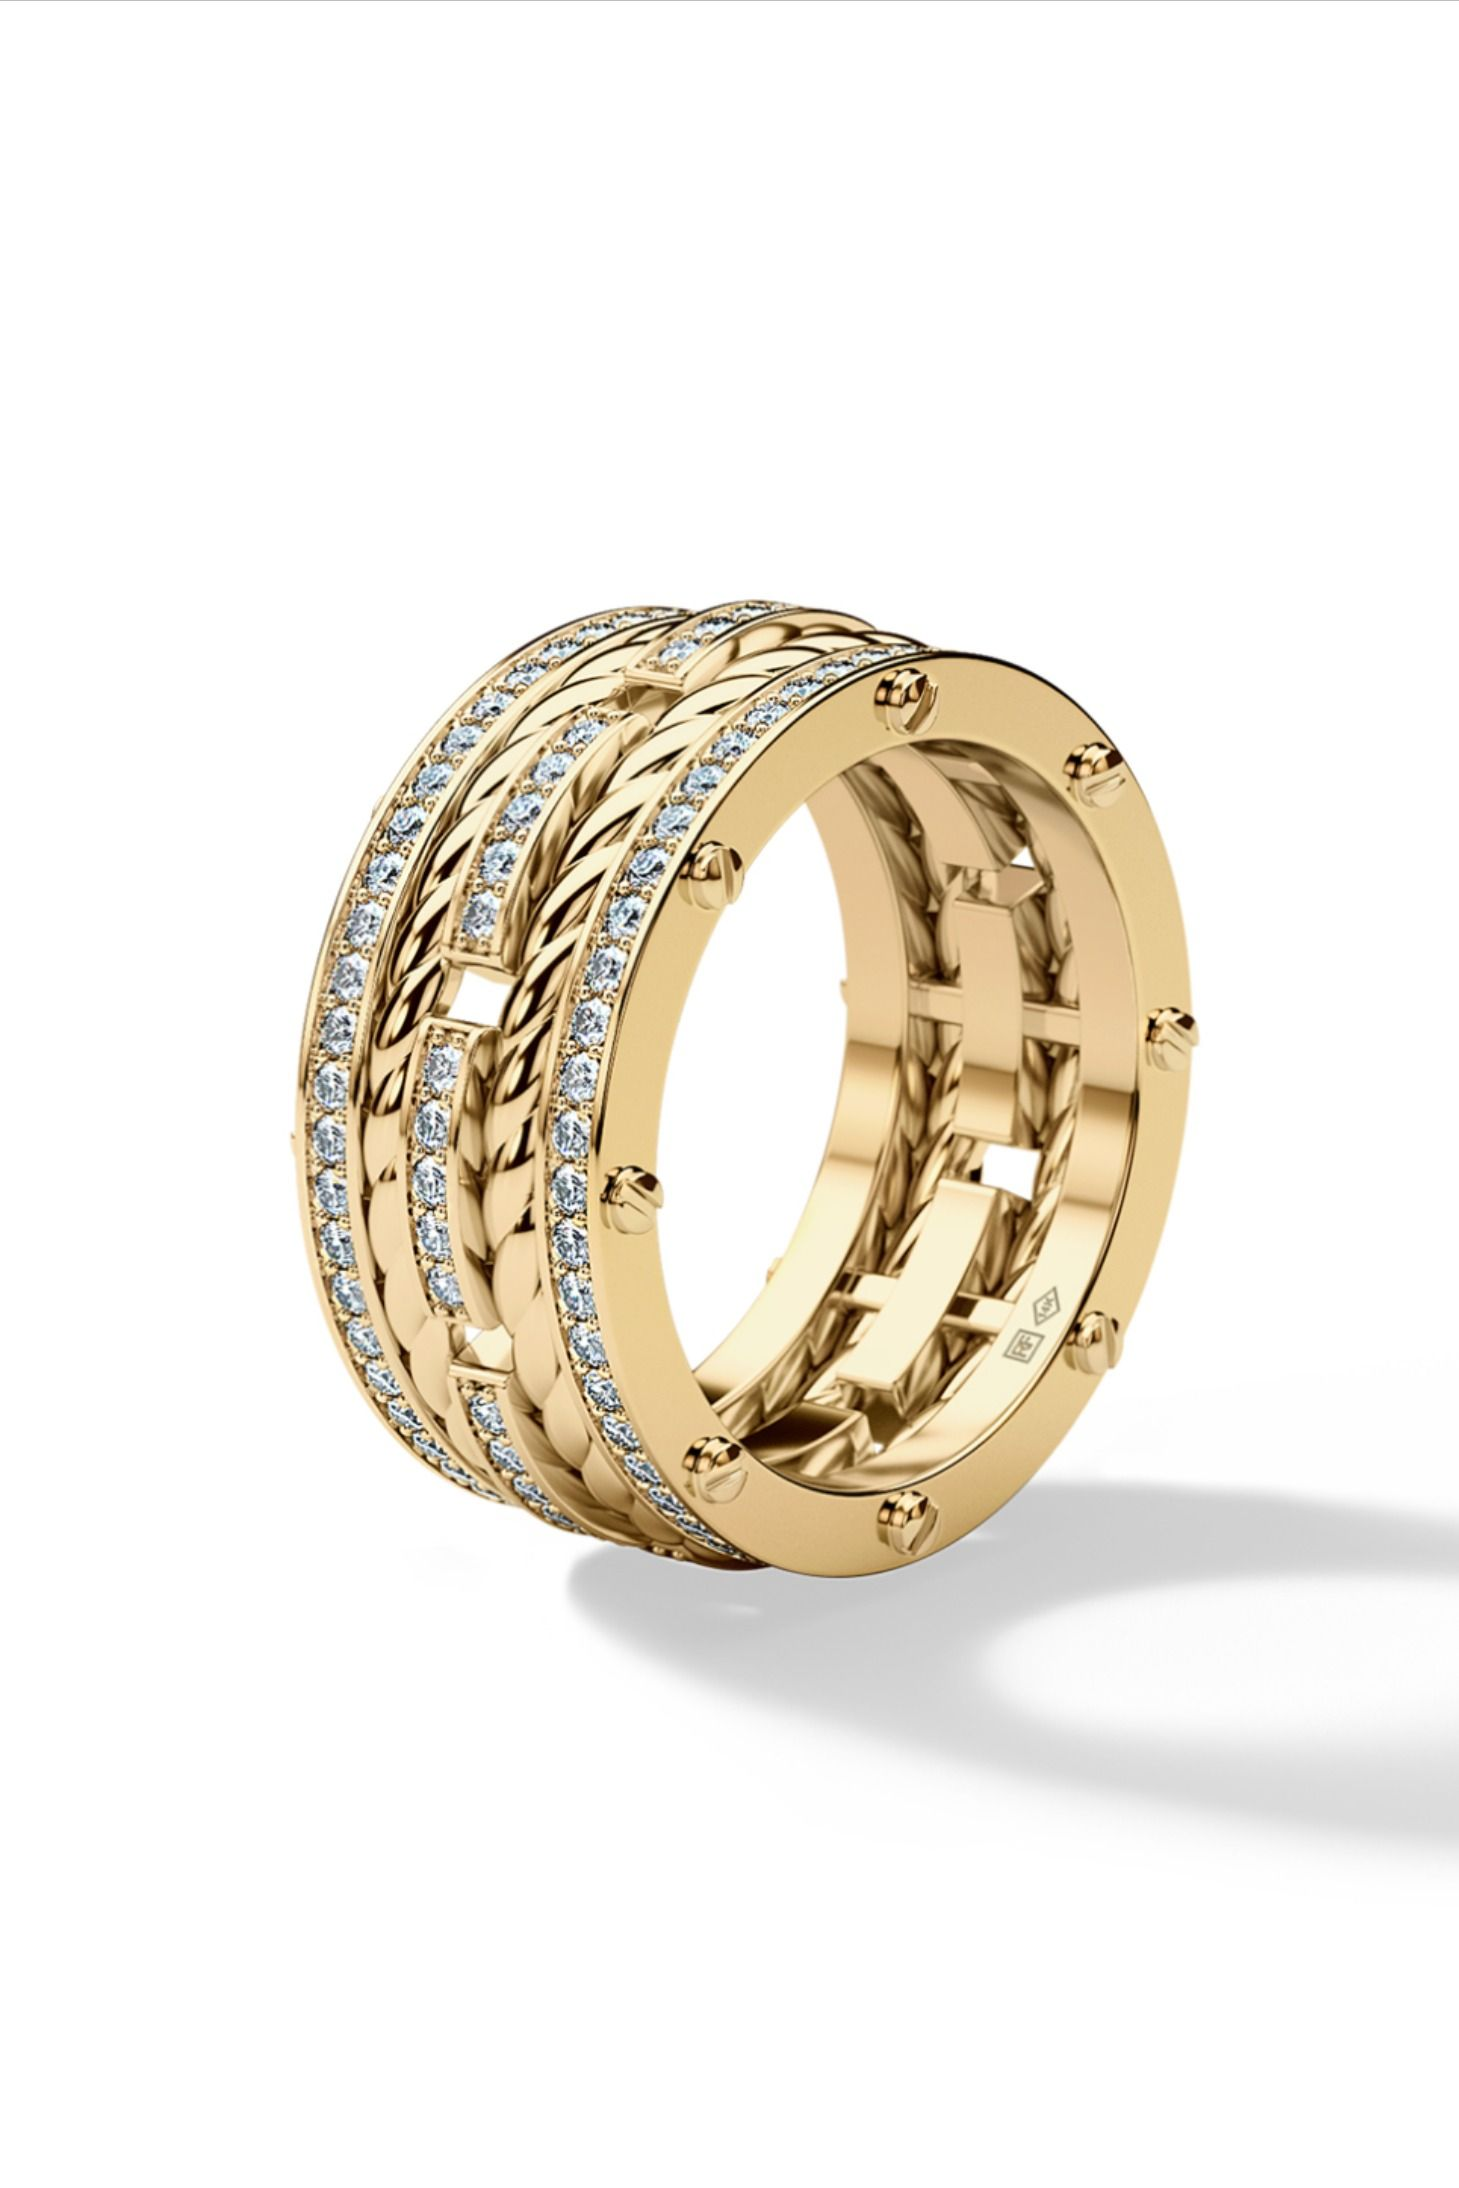 ROPES Mens Gold Wedding Band with Diamonds in 2020 Mens